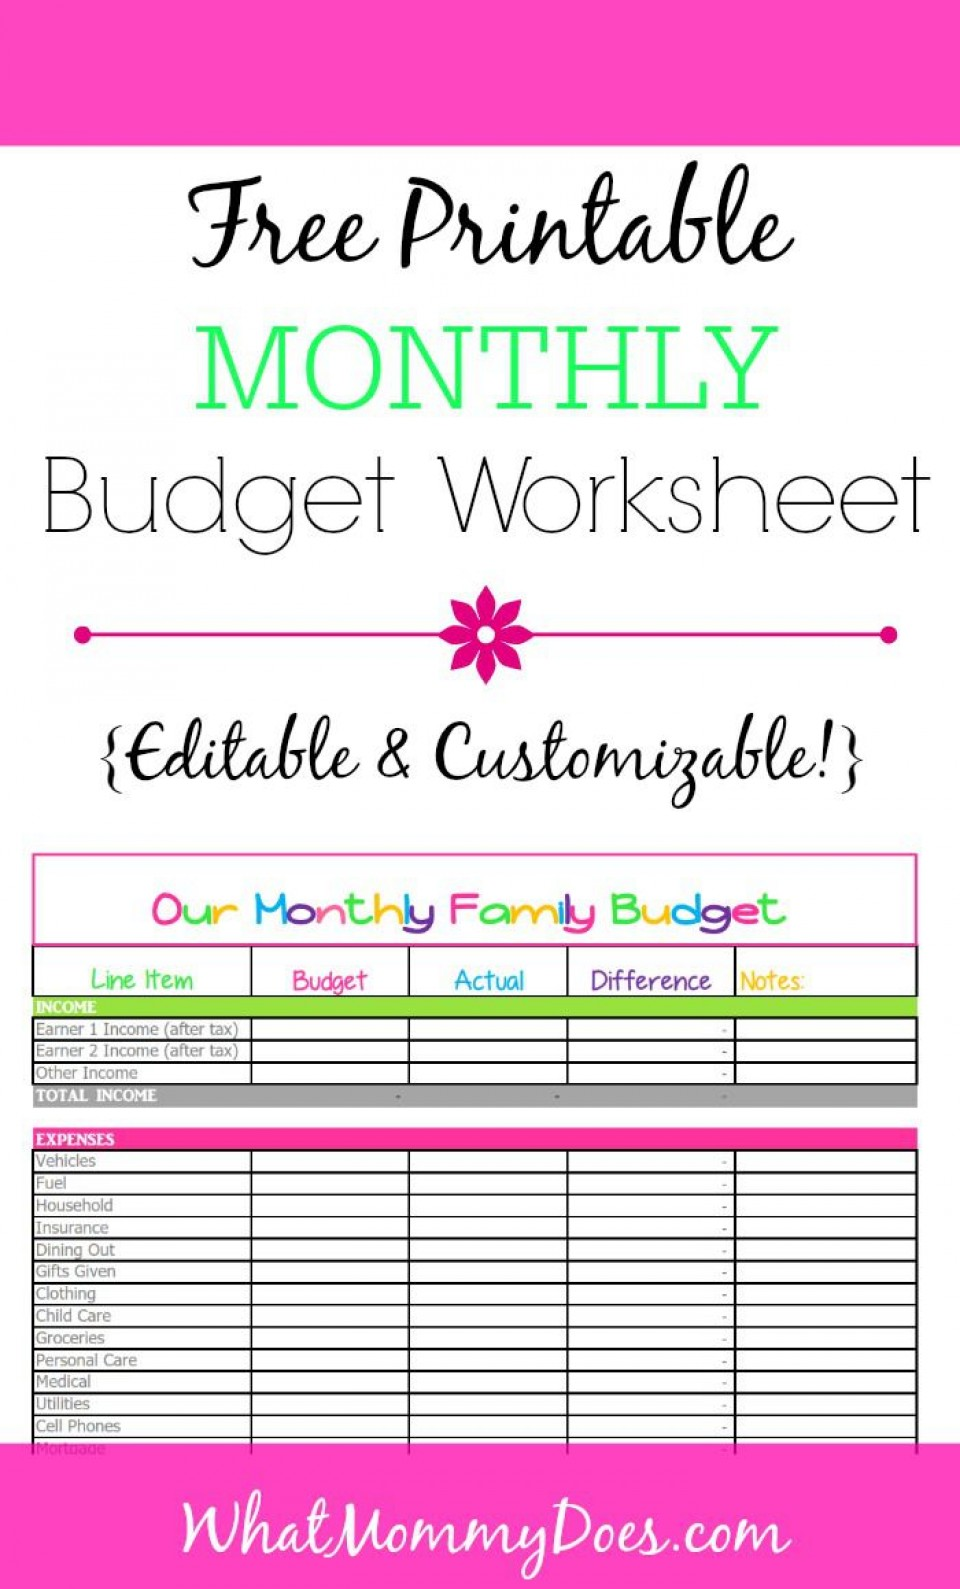 008 Awesome Free Printable Home Budget Template Photo  Form960